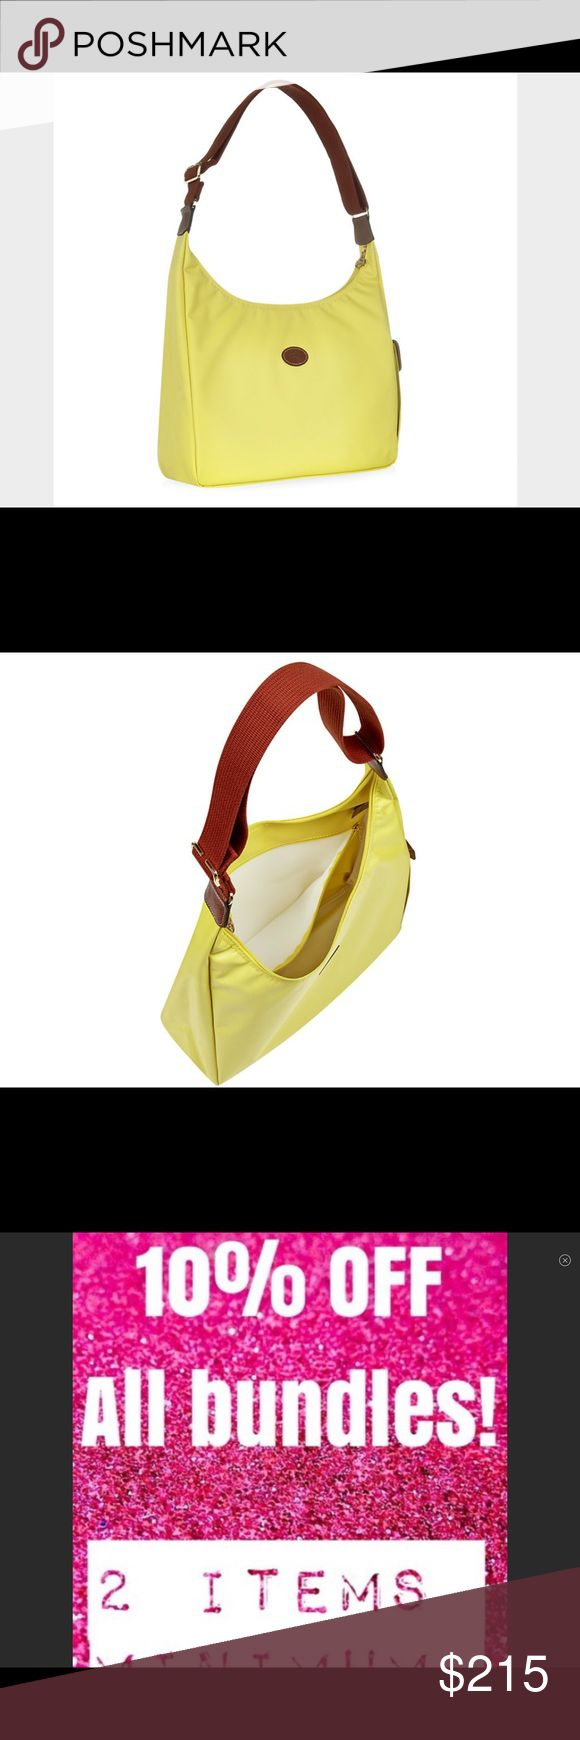 🌼NWT Longchamp Hobo Bag Le Pliage Yellow France🌻 🏇🌼NWT Longchamp Hobo Bag Le Pliage Neon Yellow Convertible Crossbody France🌻❤️THANKS FOR SHOPPING @SAFFORDHALL! WE LOVE GREAT OFFERS! SELLERS LOOK FOR 80-90% + OF LIST PRICE TO WIN YOUR BID!❤️BUNDLE TO SAVE!❤️NO TRADES NO LOWBALLS!❤️BULLYS, TROLLS AND HARASSERS ARE REPORTED AND BLOCKED❤️KEEP POSHMARK CLASSY!❤️SPREAD THE LOVE!❤️DO UNTO OTHERS AS YOU WOULD HAVE THEM DO UNTO YOU❤️STOP THINK ACT PROCEED❤️WE WORK HARD TO BRING YOU THE CUTEST…